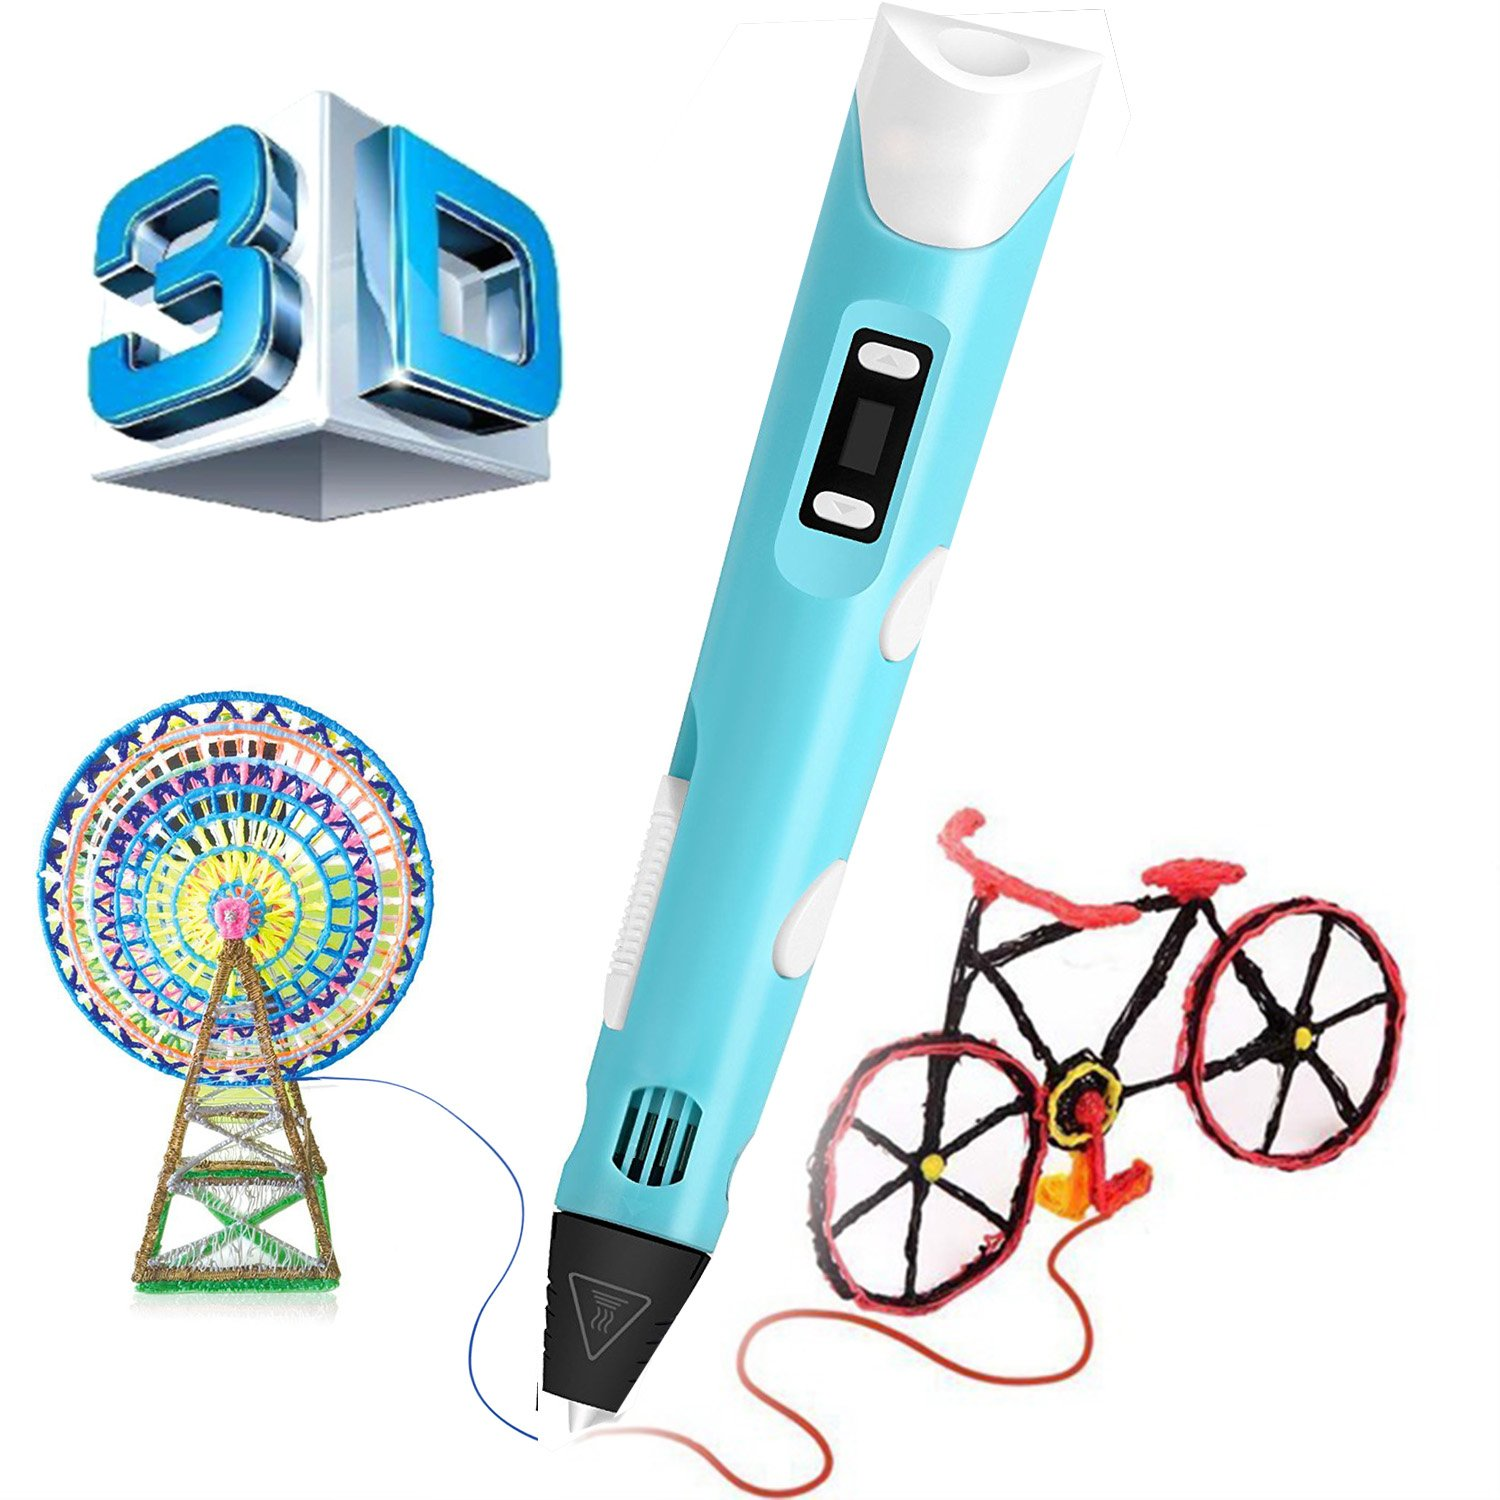 3D Drawing Printing Pen with Filament Refills Upgrade 2.0 3D Pen for DIY Arts Crafts Making for Kids and Adults 3D Drawing Pen with 1.75mm PLA Filament Printing Pen with LED Display (Blue 3D Pen)